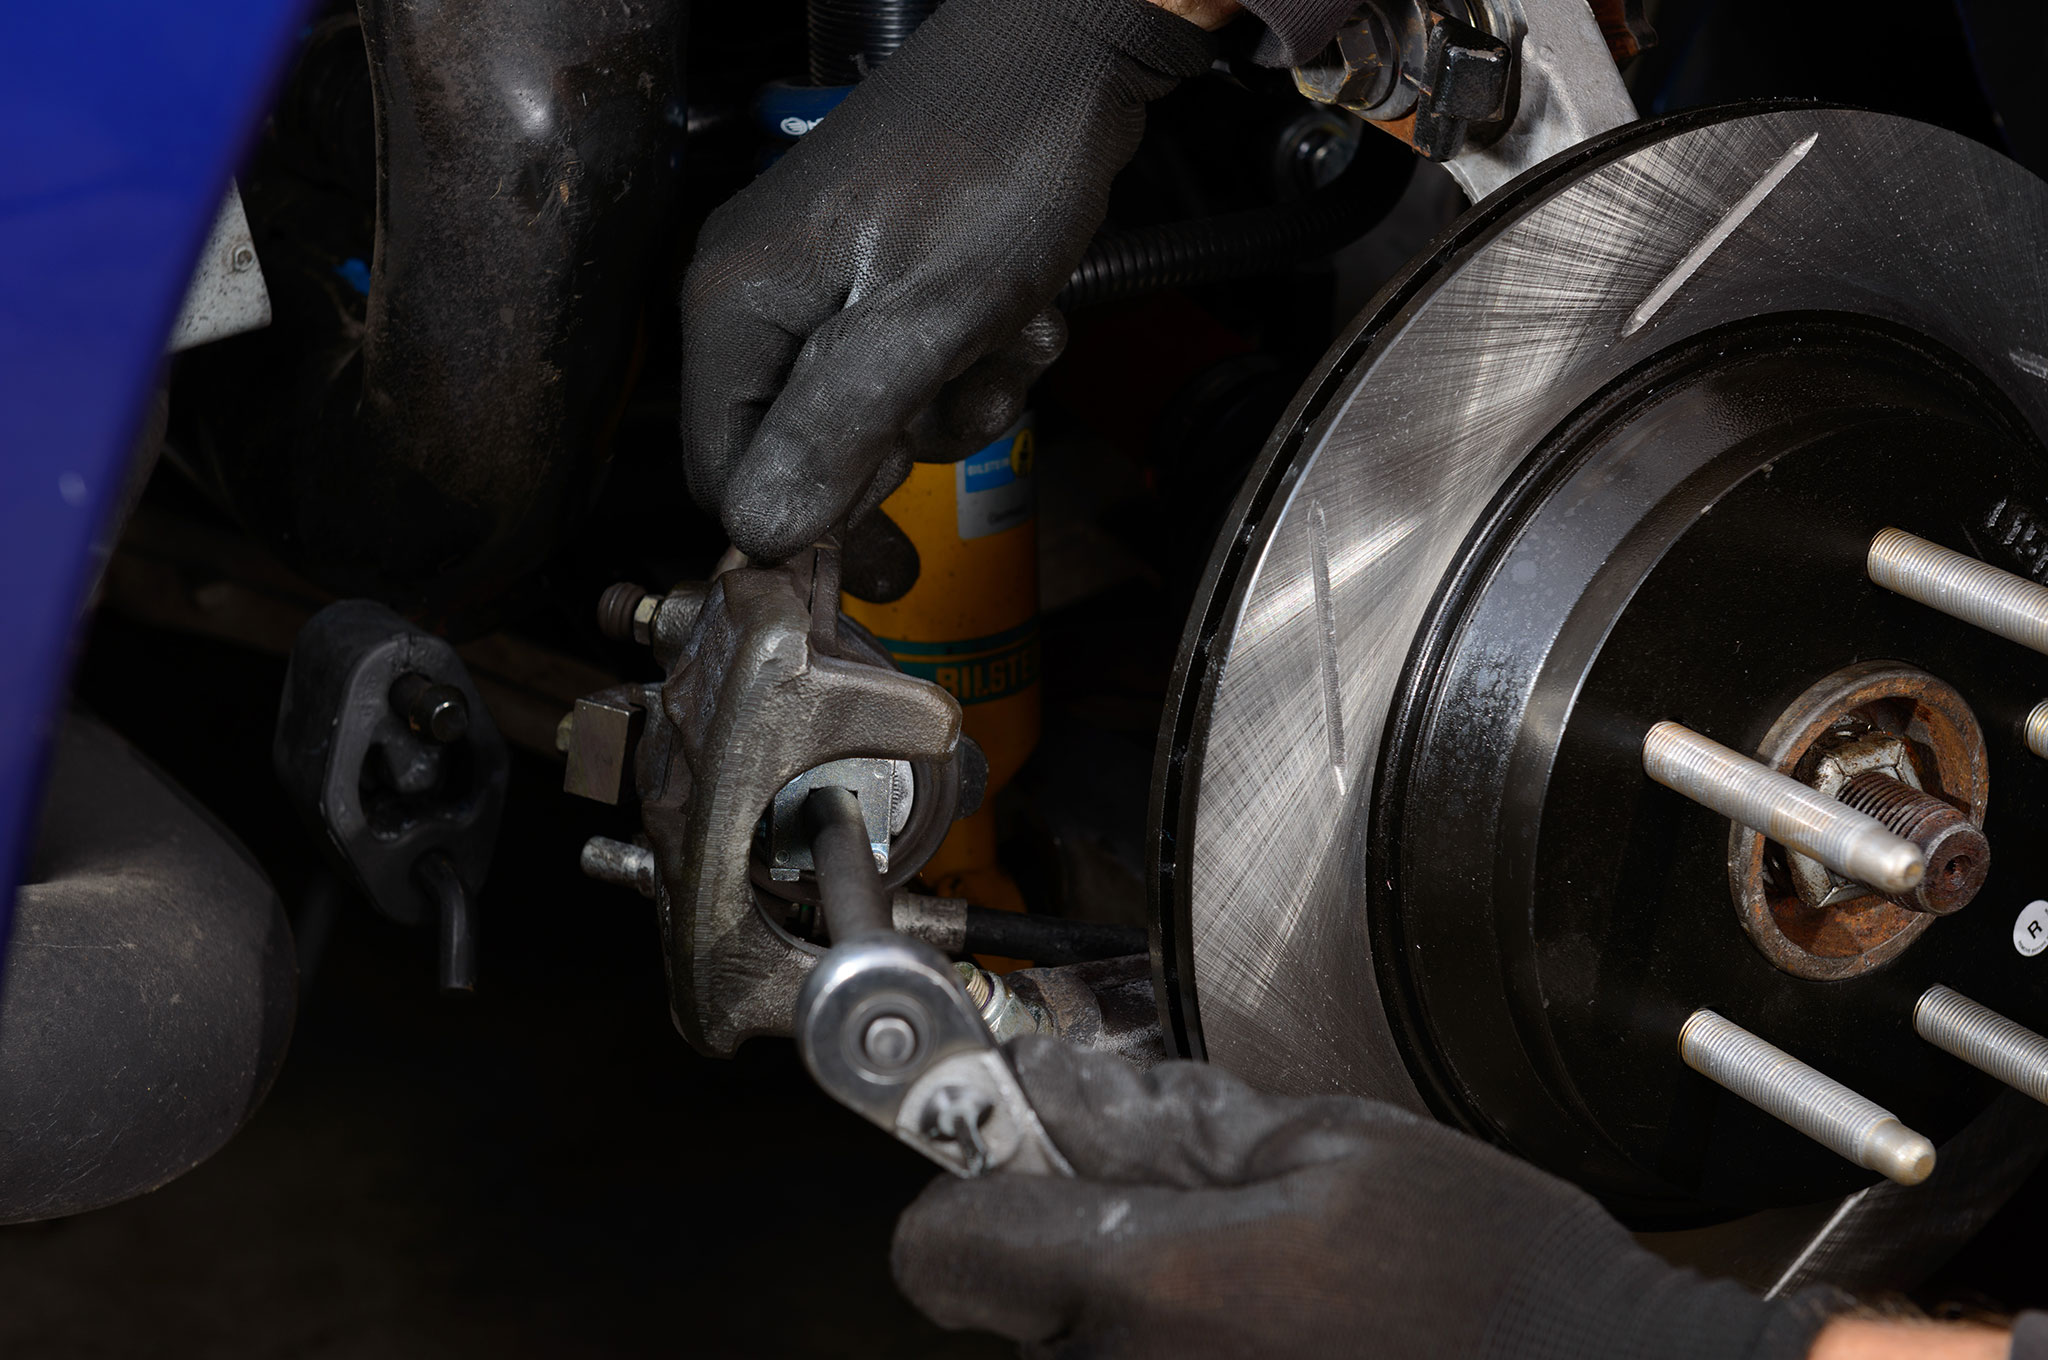 09 2003 Ford Mustang Cobra Screwing On Rear Piston With Brake Piston Tool